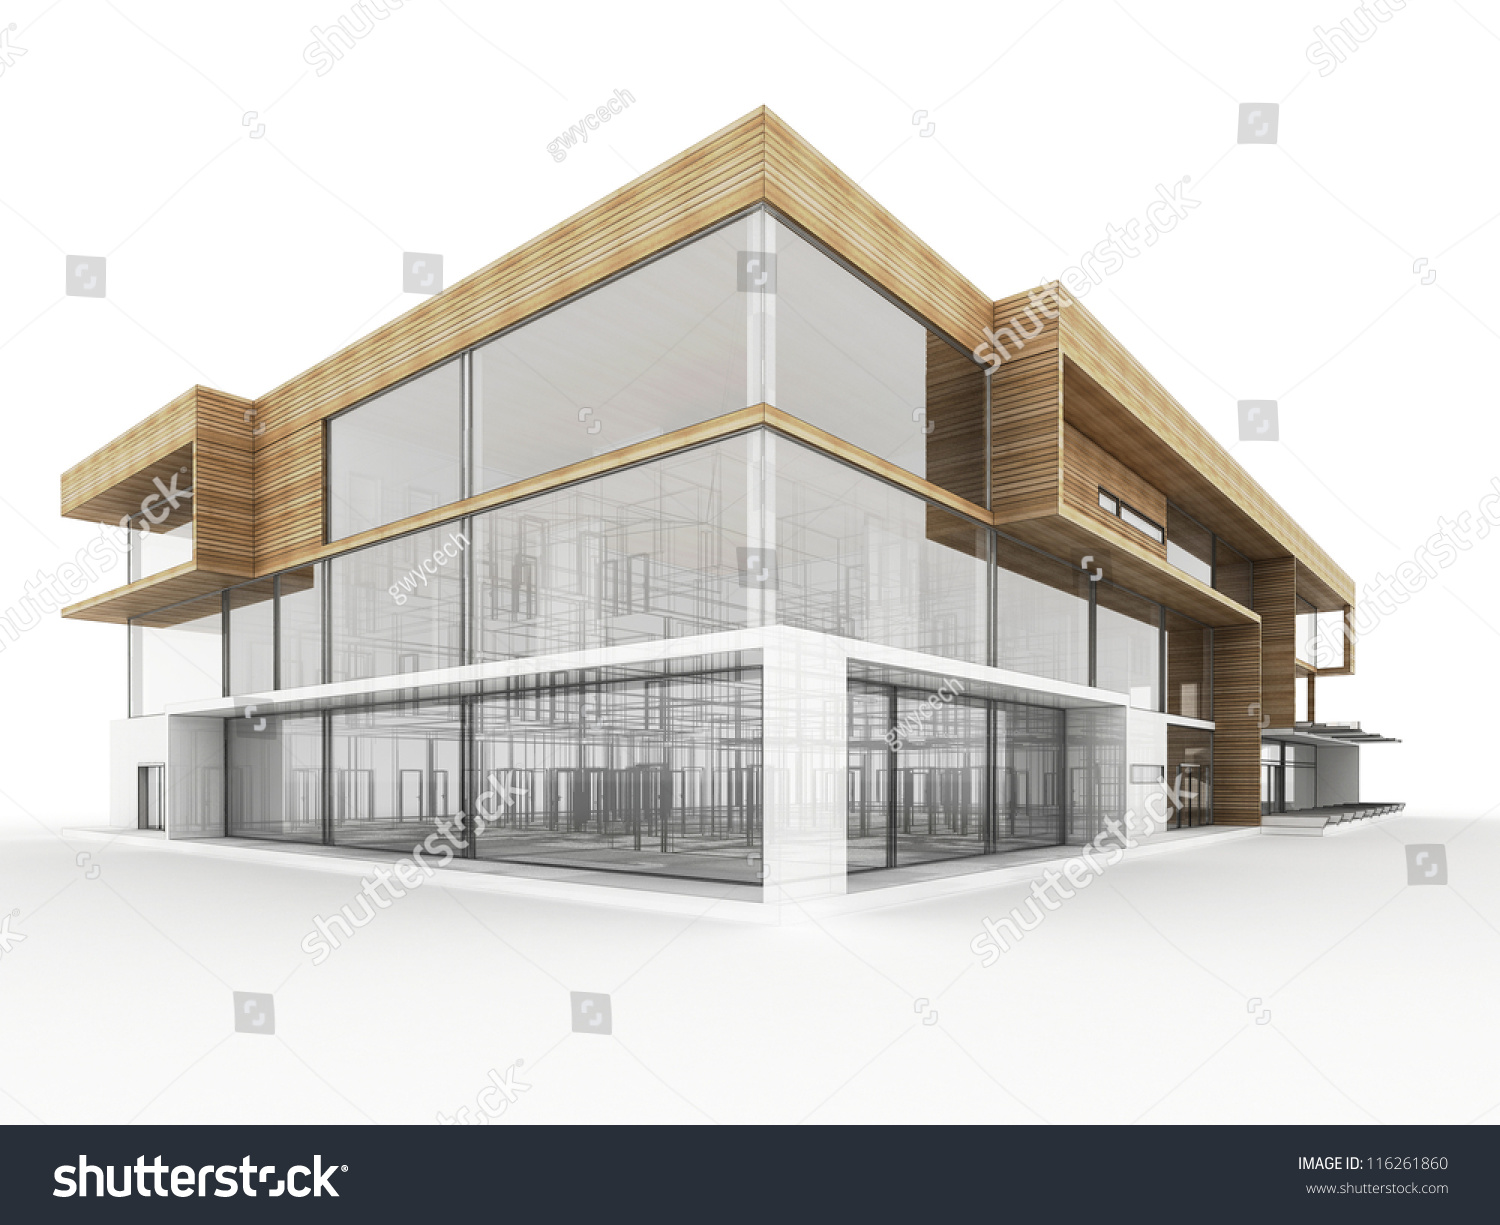 Design modern office building architects designers stock for Modern small office building design